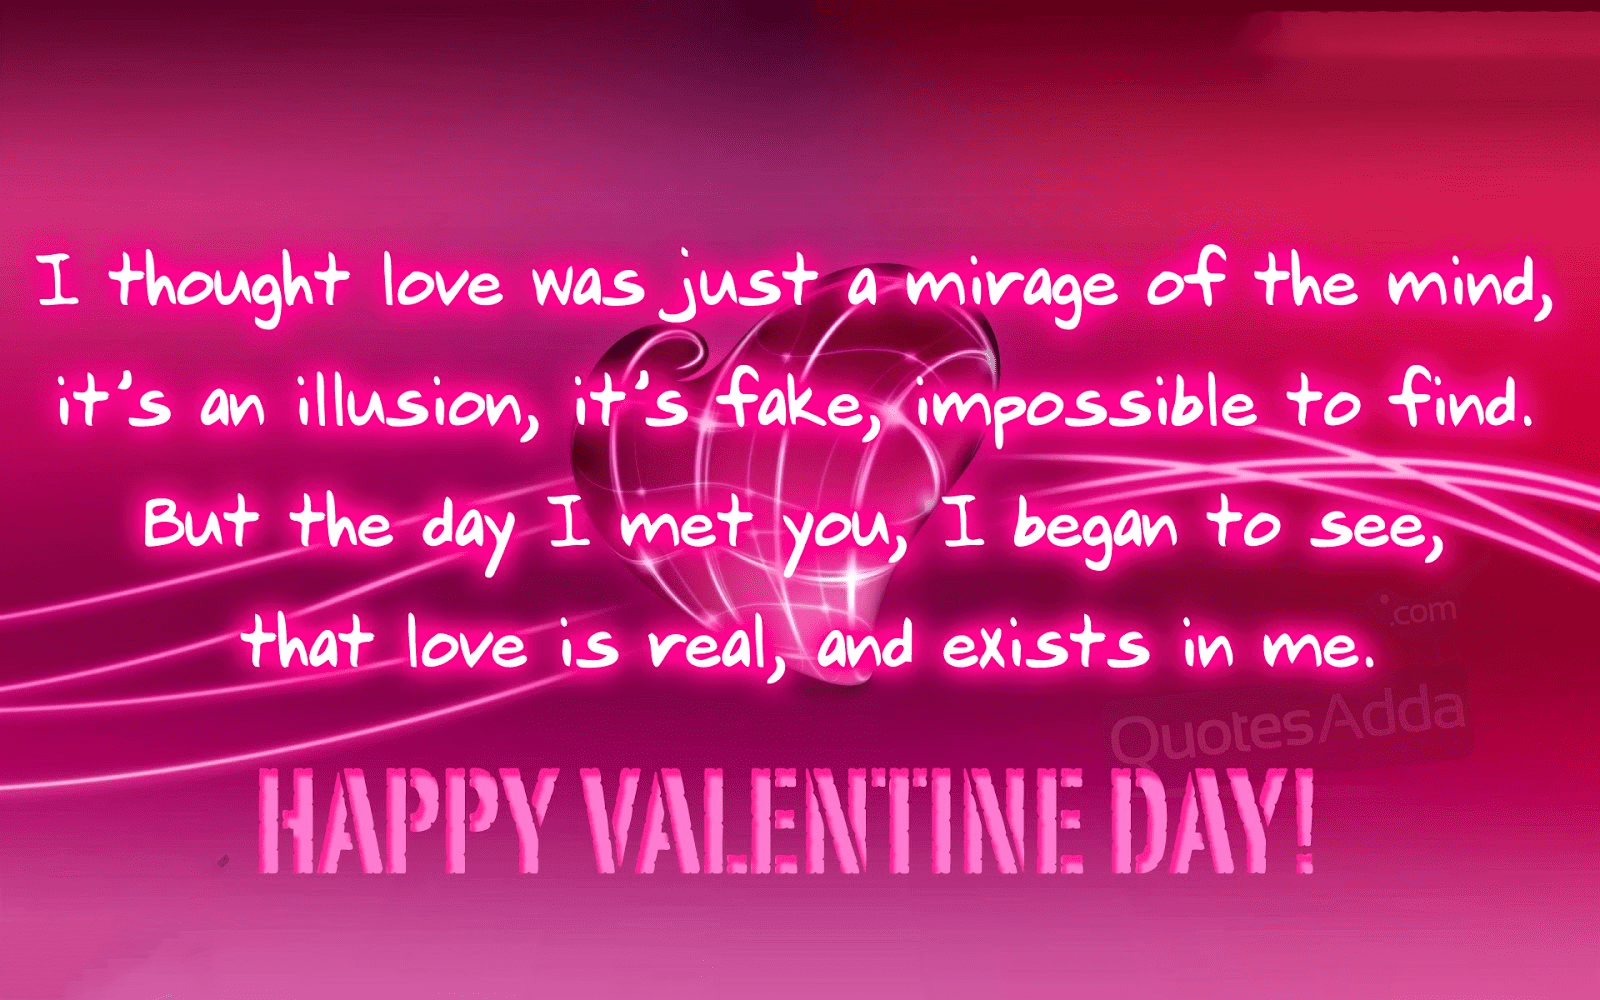 Valentine's Day Wishes picture 8